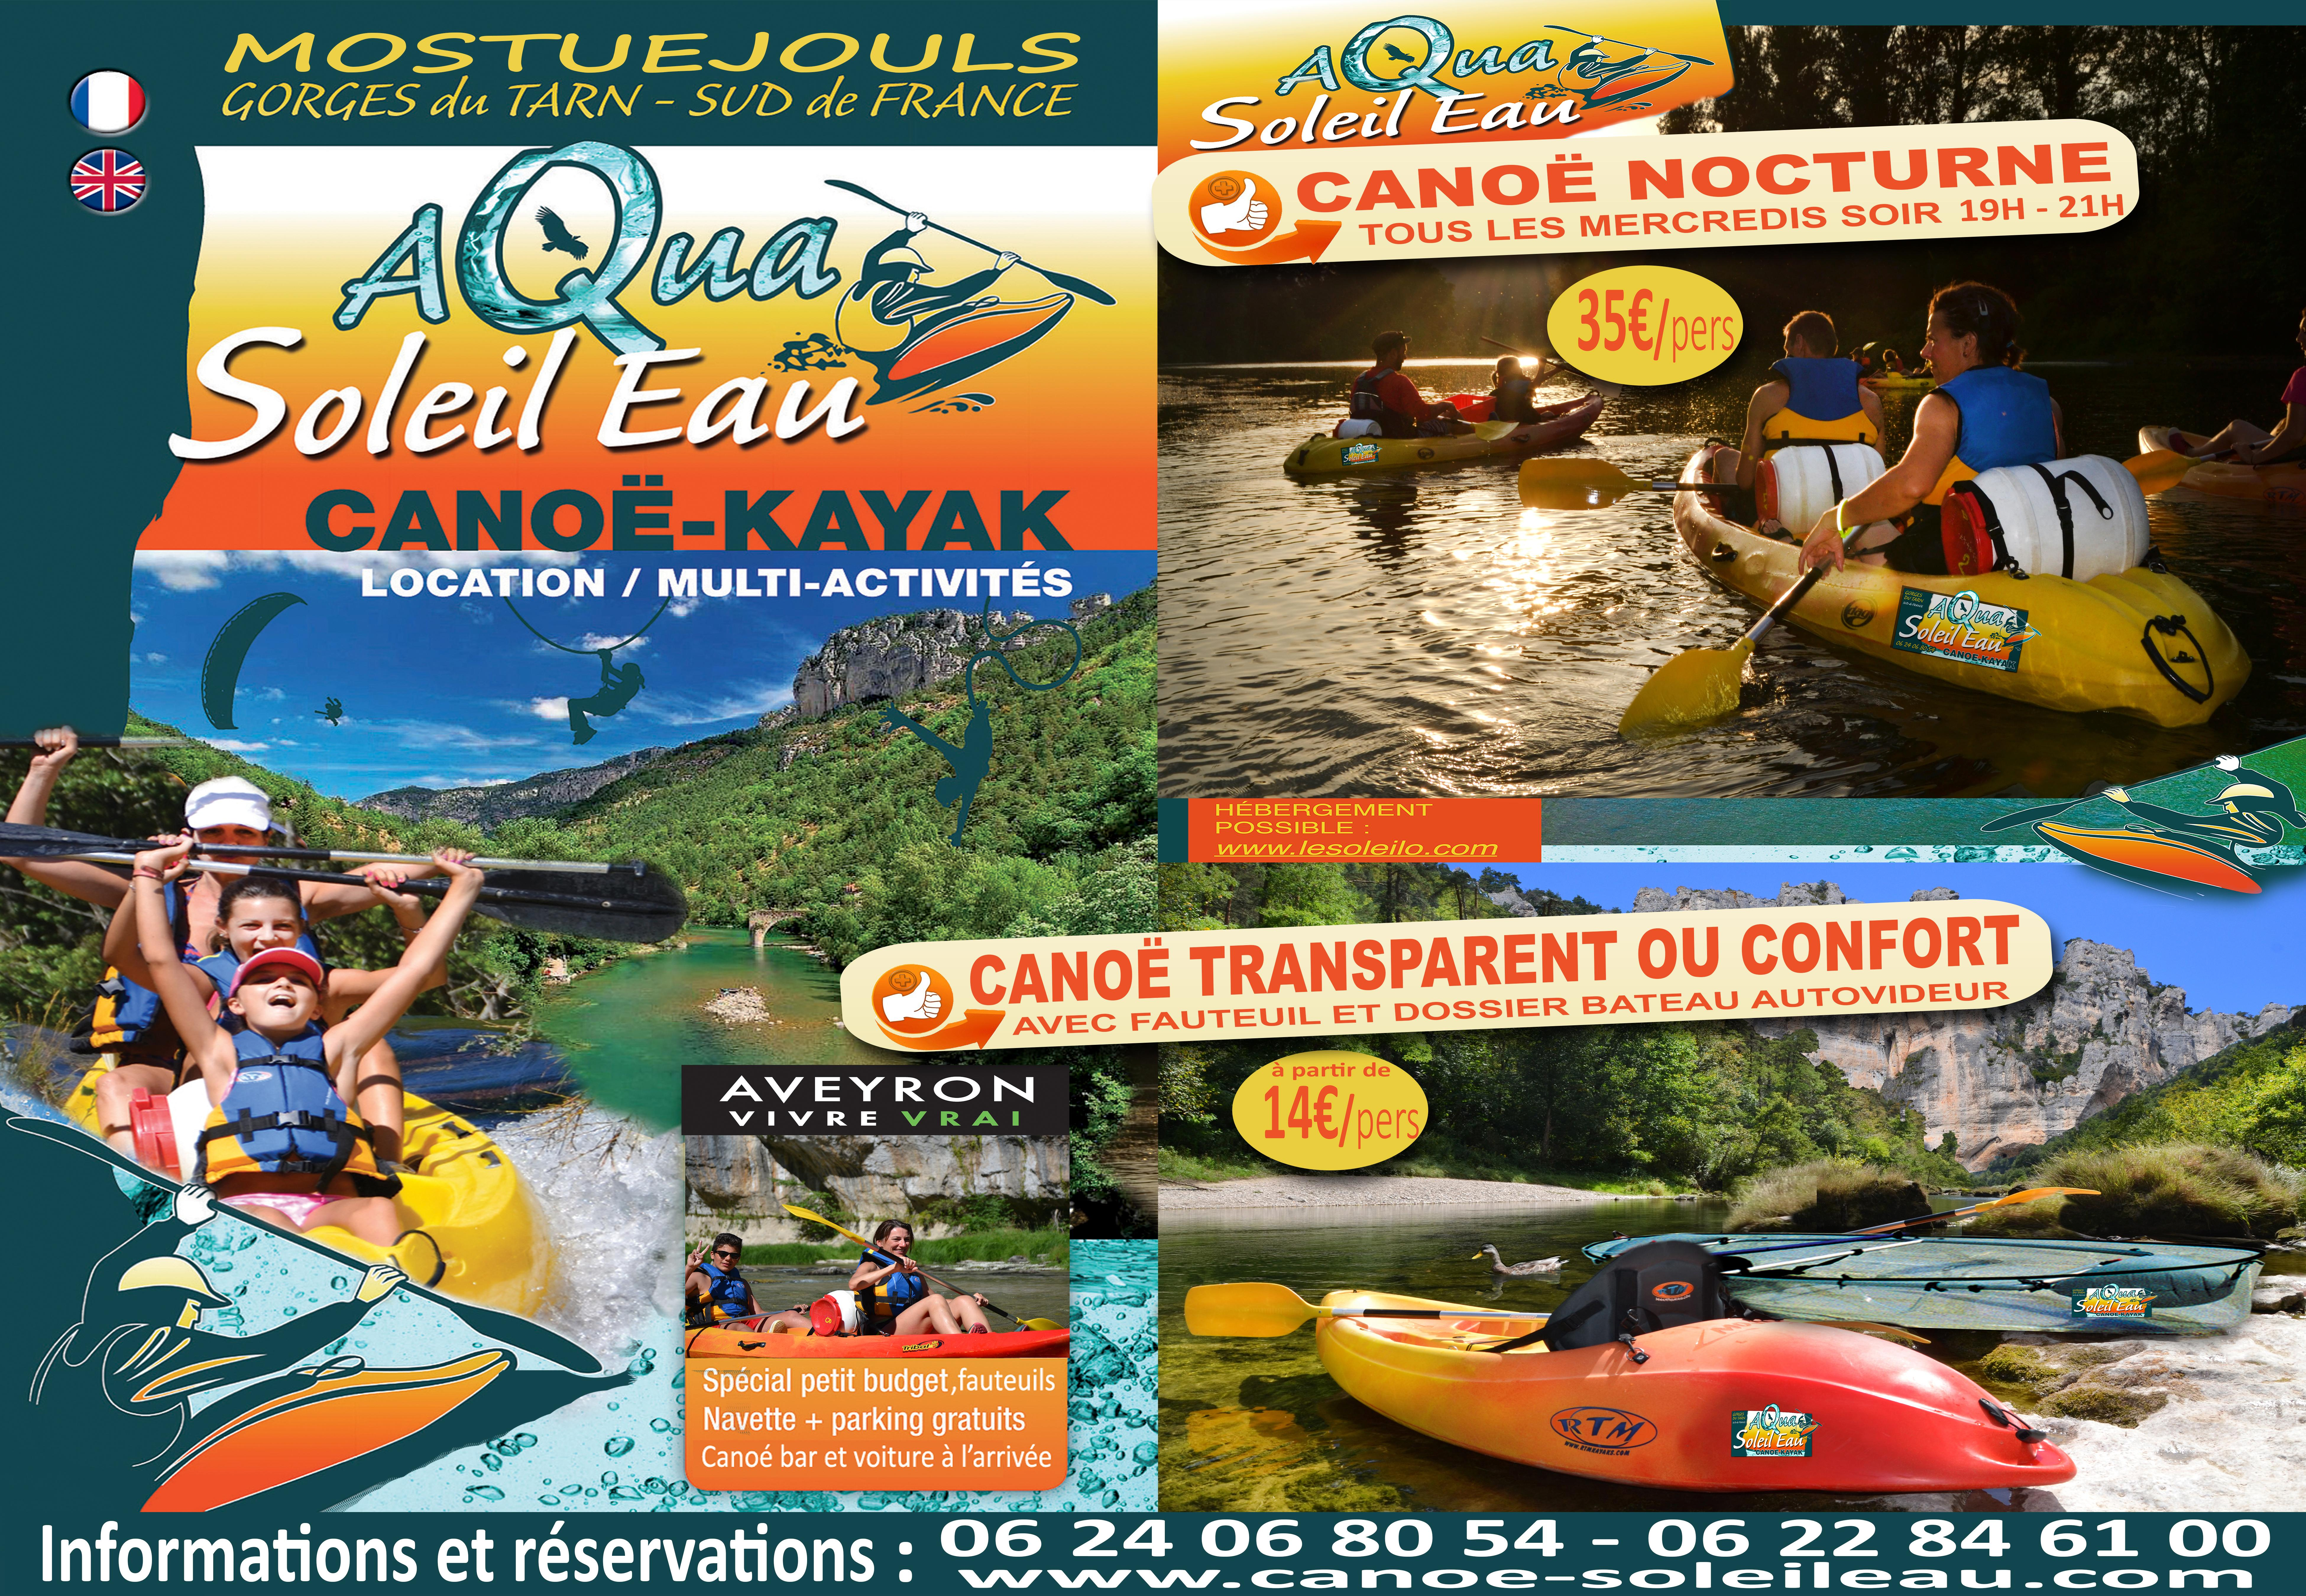 Canoe in the Tarn Gorges, Canoe rental South Aveyron Tarn with Aqua Soleil Water Canoe canoe nocturnal fun and playful and transparent canoe